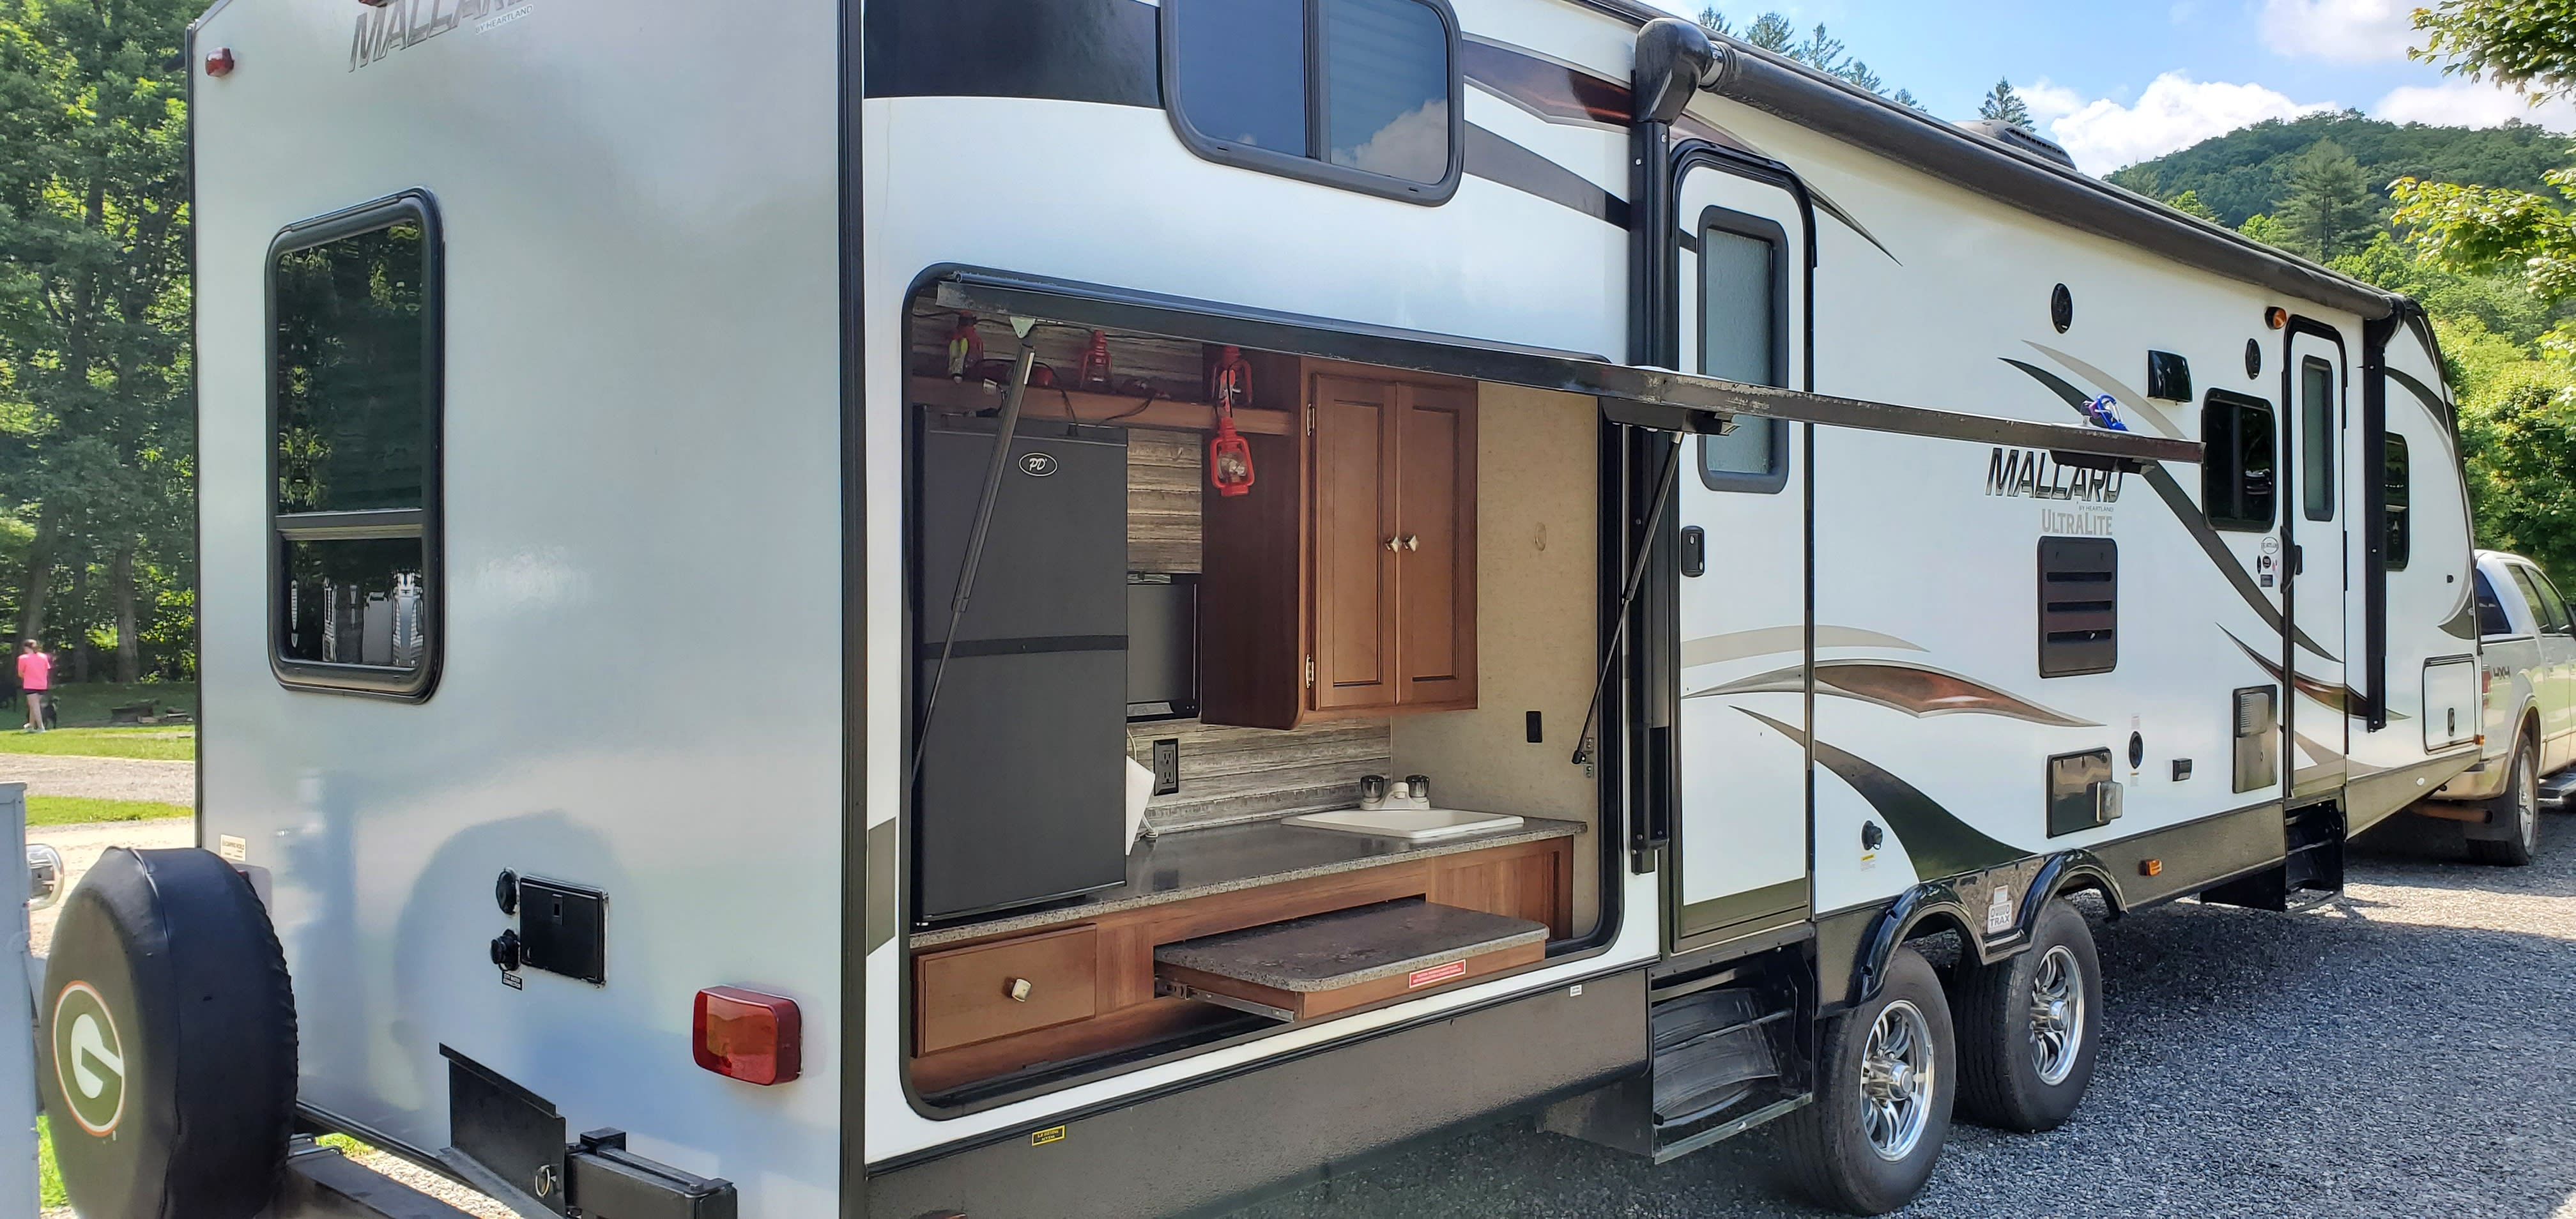 32 foot bunkhouse camper with outdoor kitchen and gas grill.. Heartland Other 2017